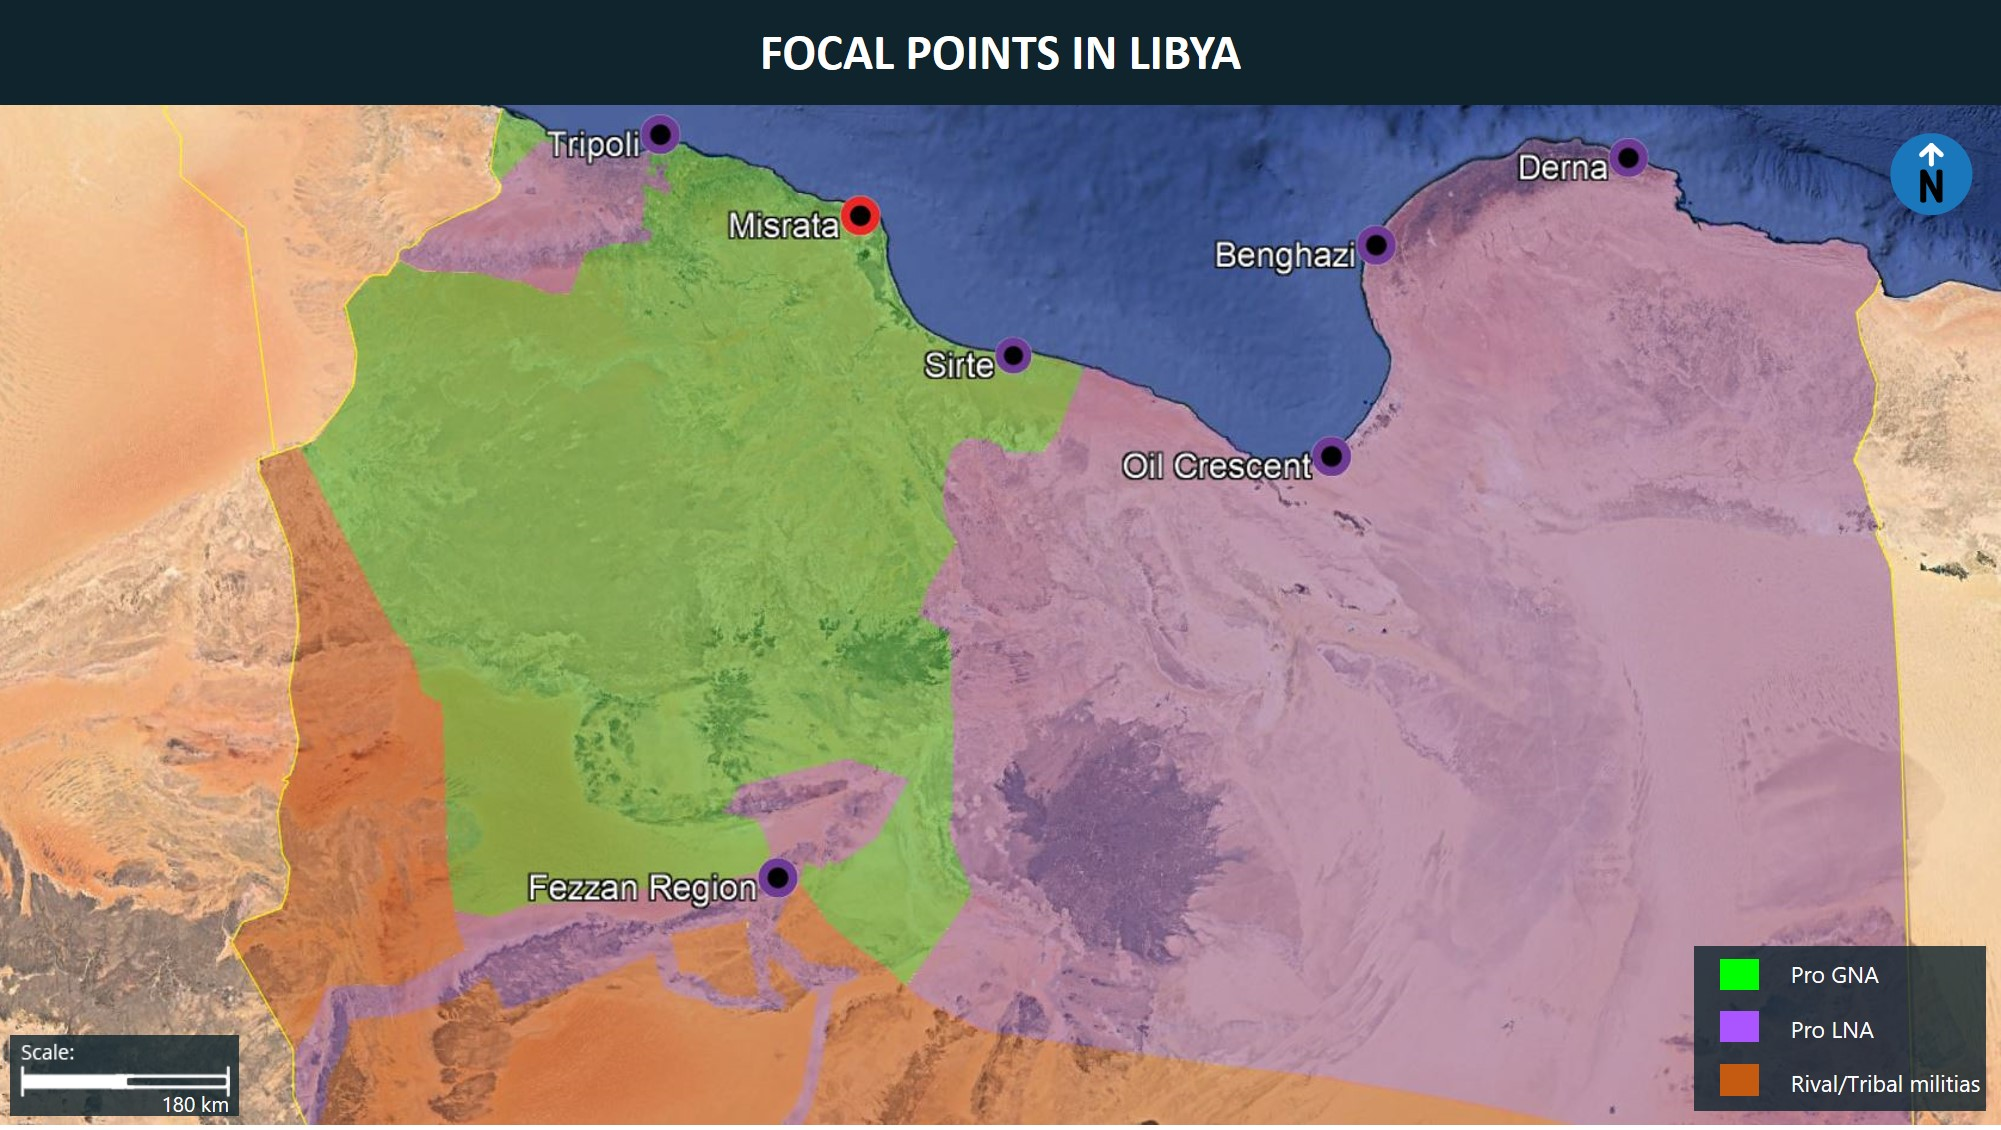 Focal Points in Libya